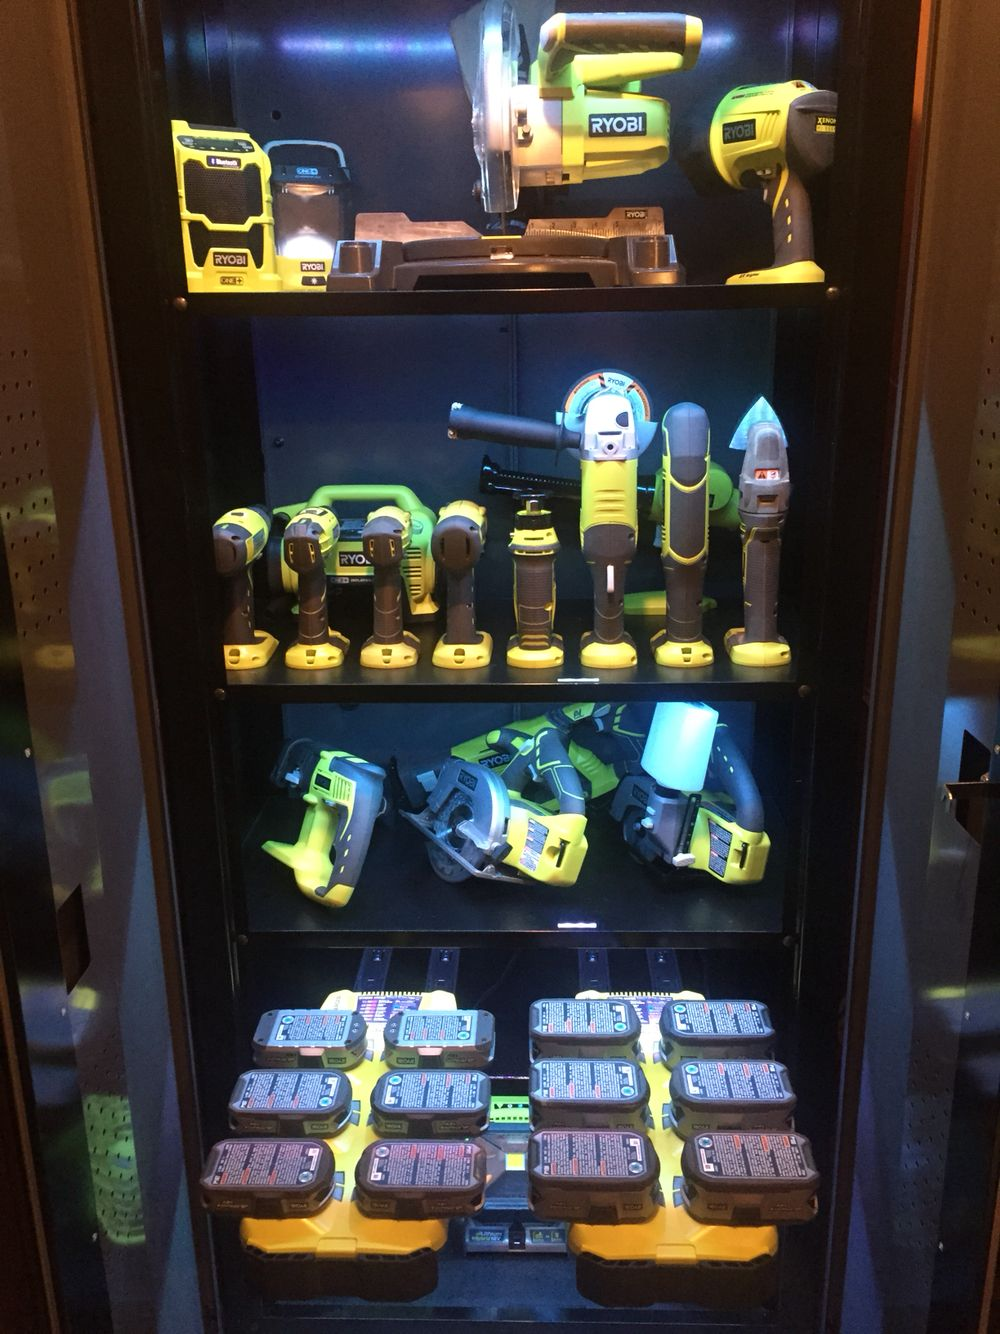 Ryobi Tool Storage With Slide Out Battery Chargers In 2020